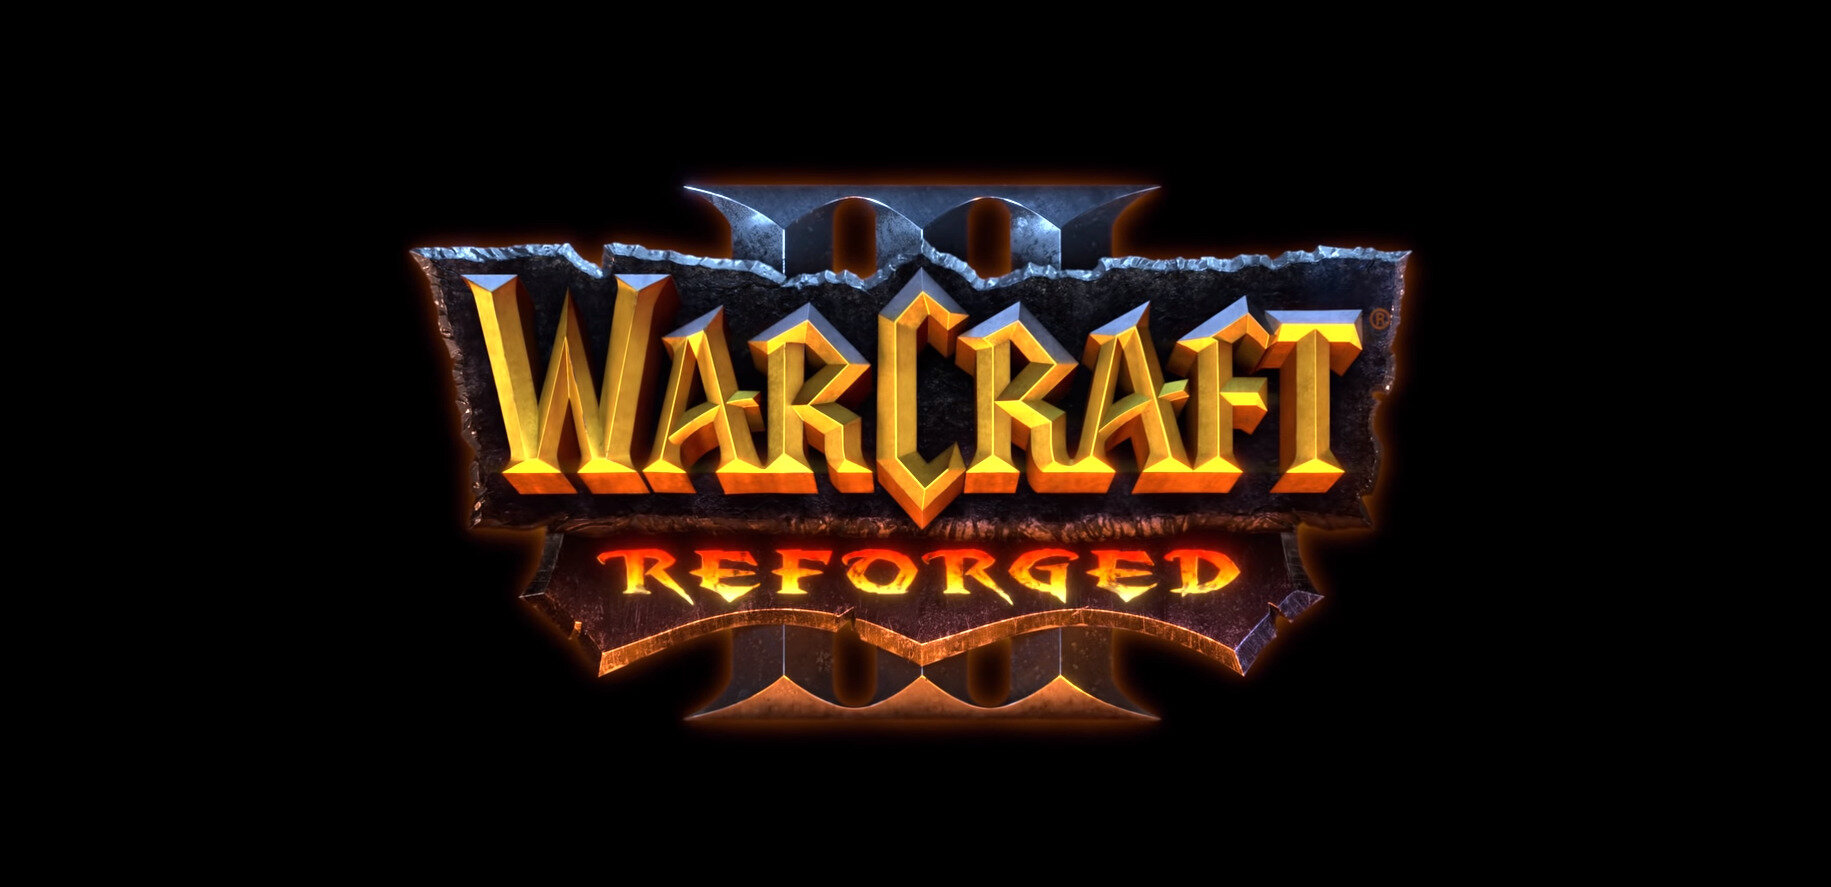 Pilotes Adrenalin 20.1.4 : AMD s'optimise pour Warcraft III Reforged